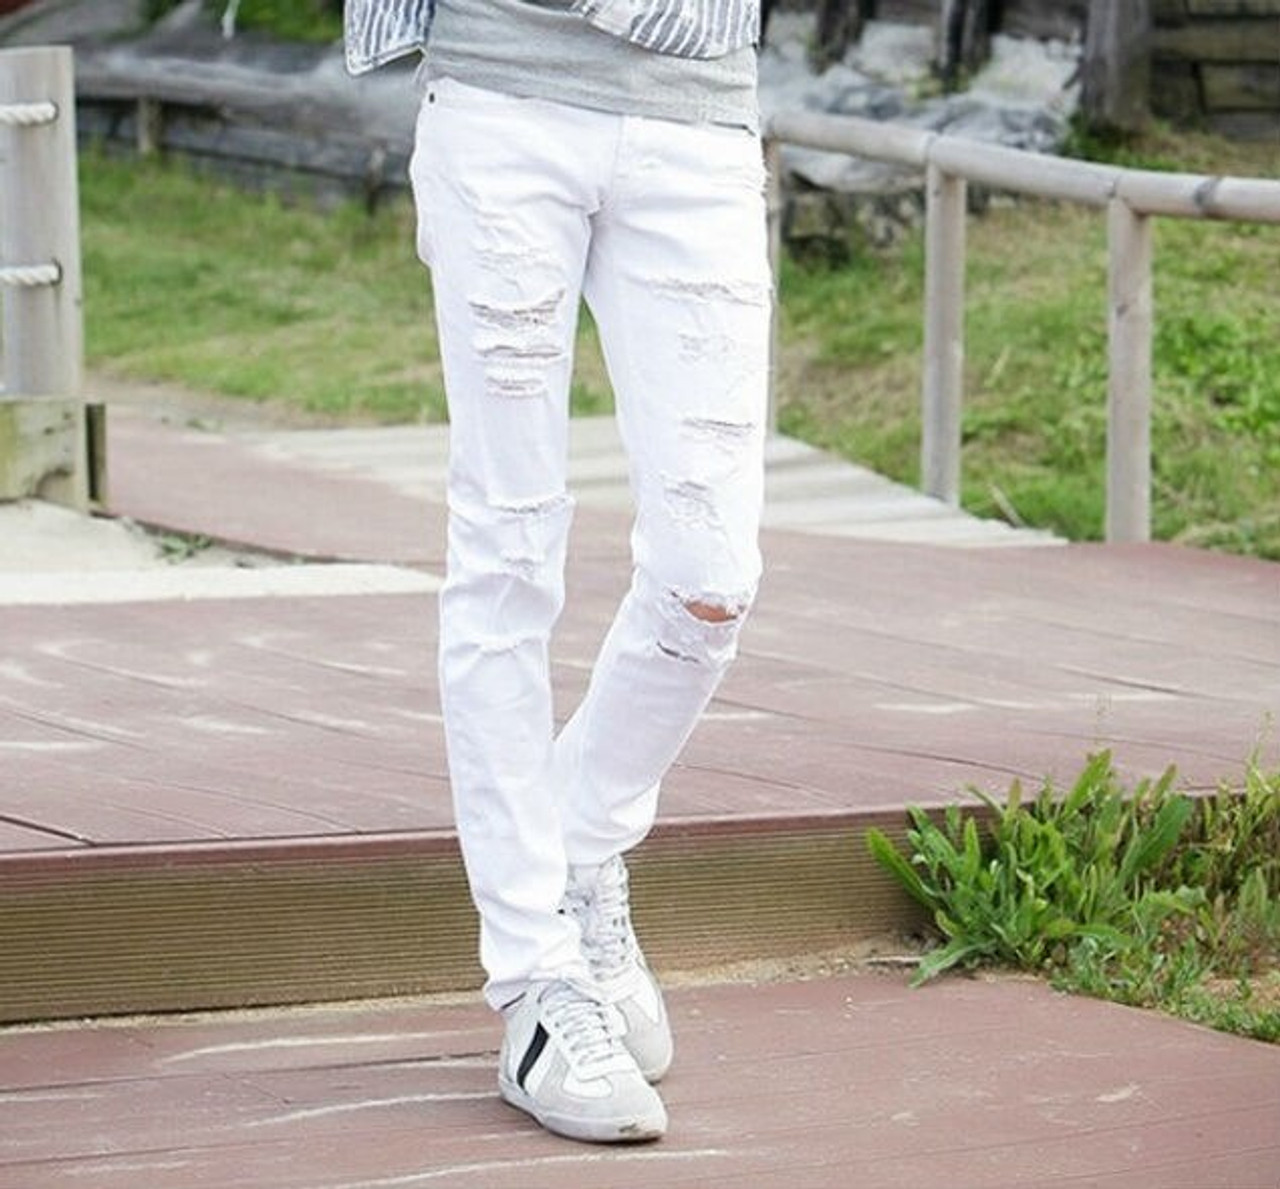 0526ec4f80 ... fashion Ripped Jeans Men With Holes Super Skinny Designer white Slim  Fit Jean Pants For Man ...